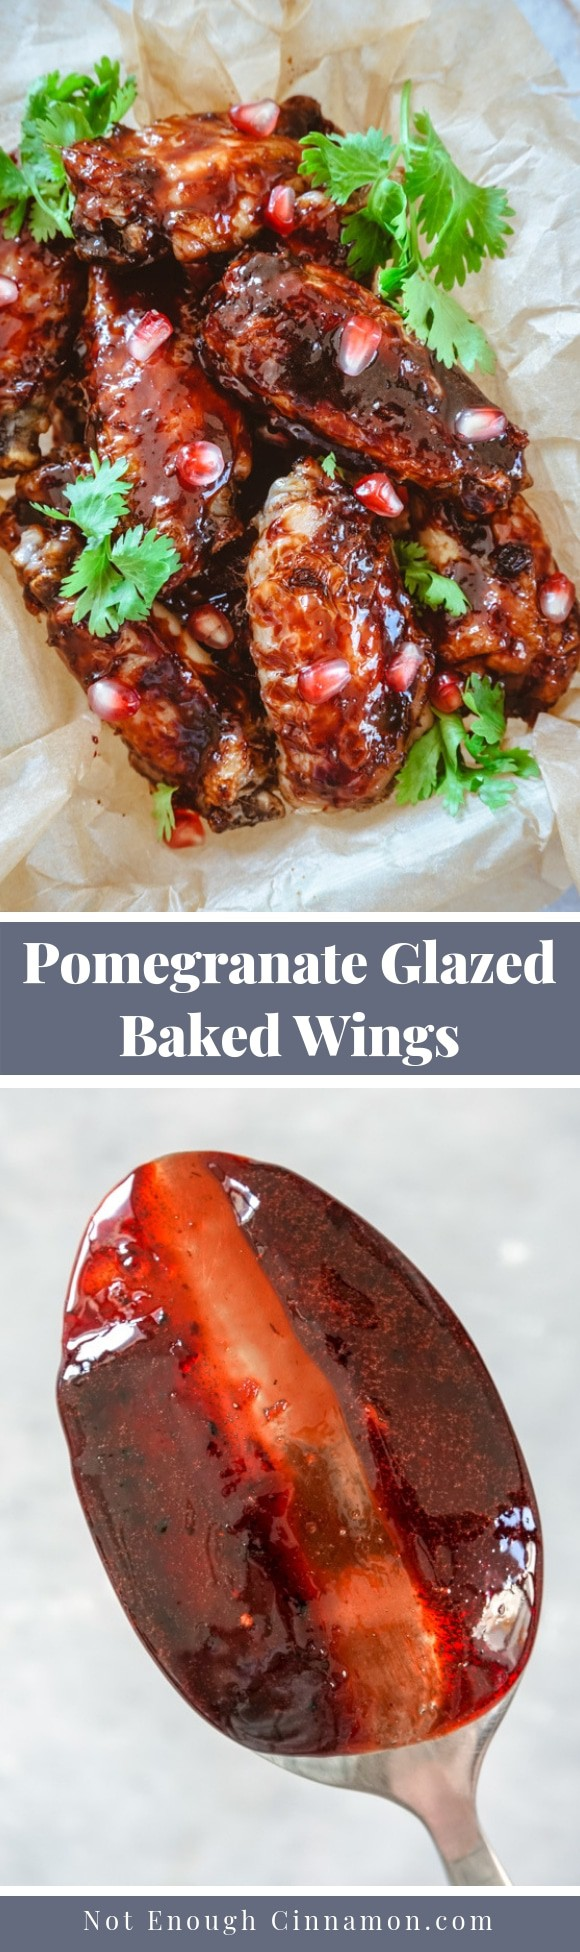 Baked Chicken Wings With Pomegranate Glaze